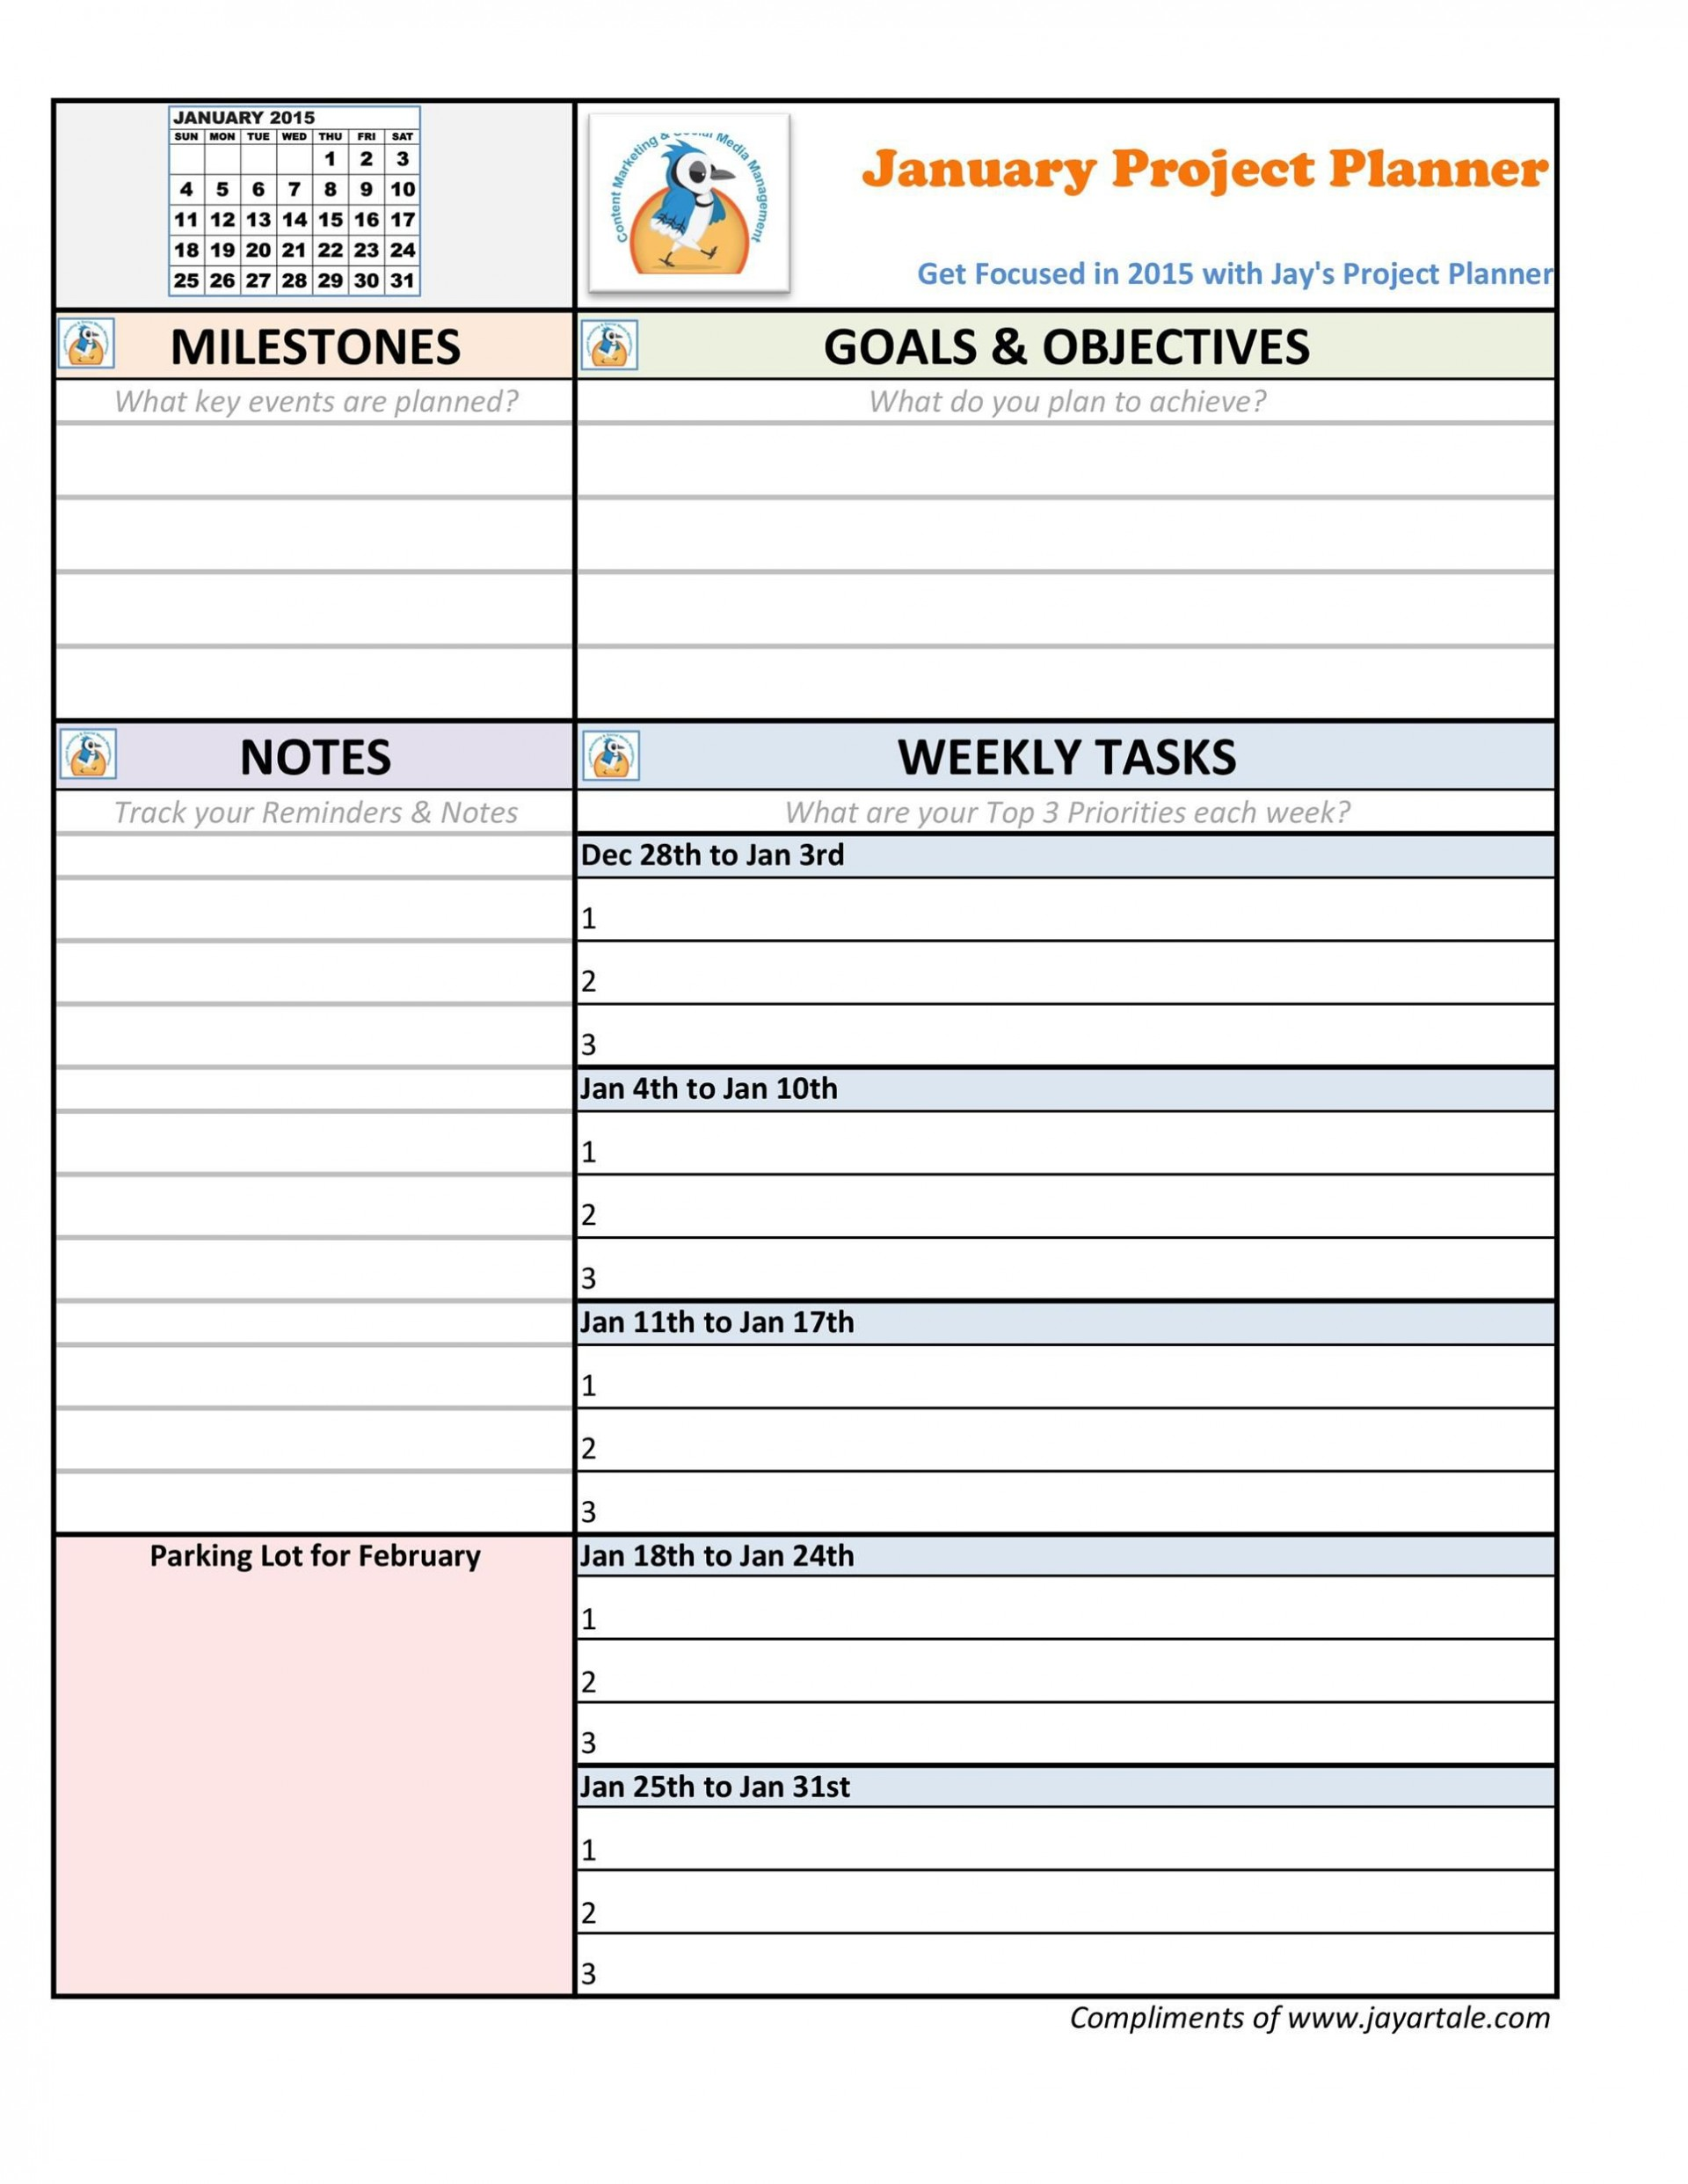 009 Incredible Project Planning Template Free Download Image  Software Management Plan Excel Xl1920